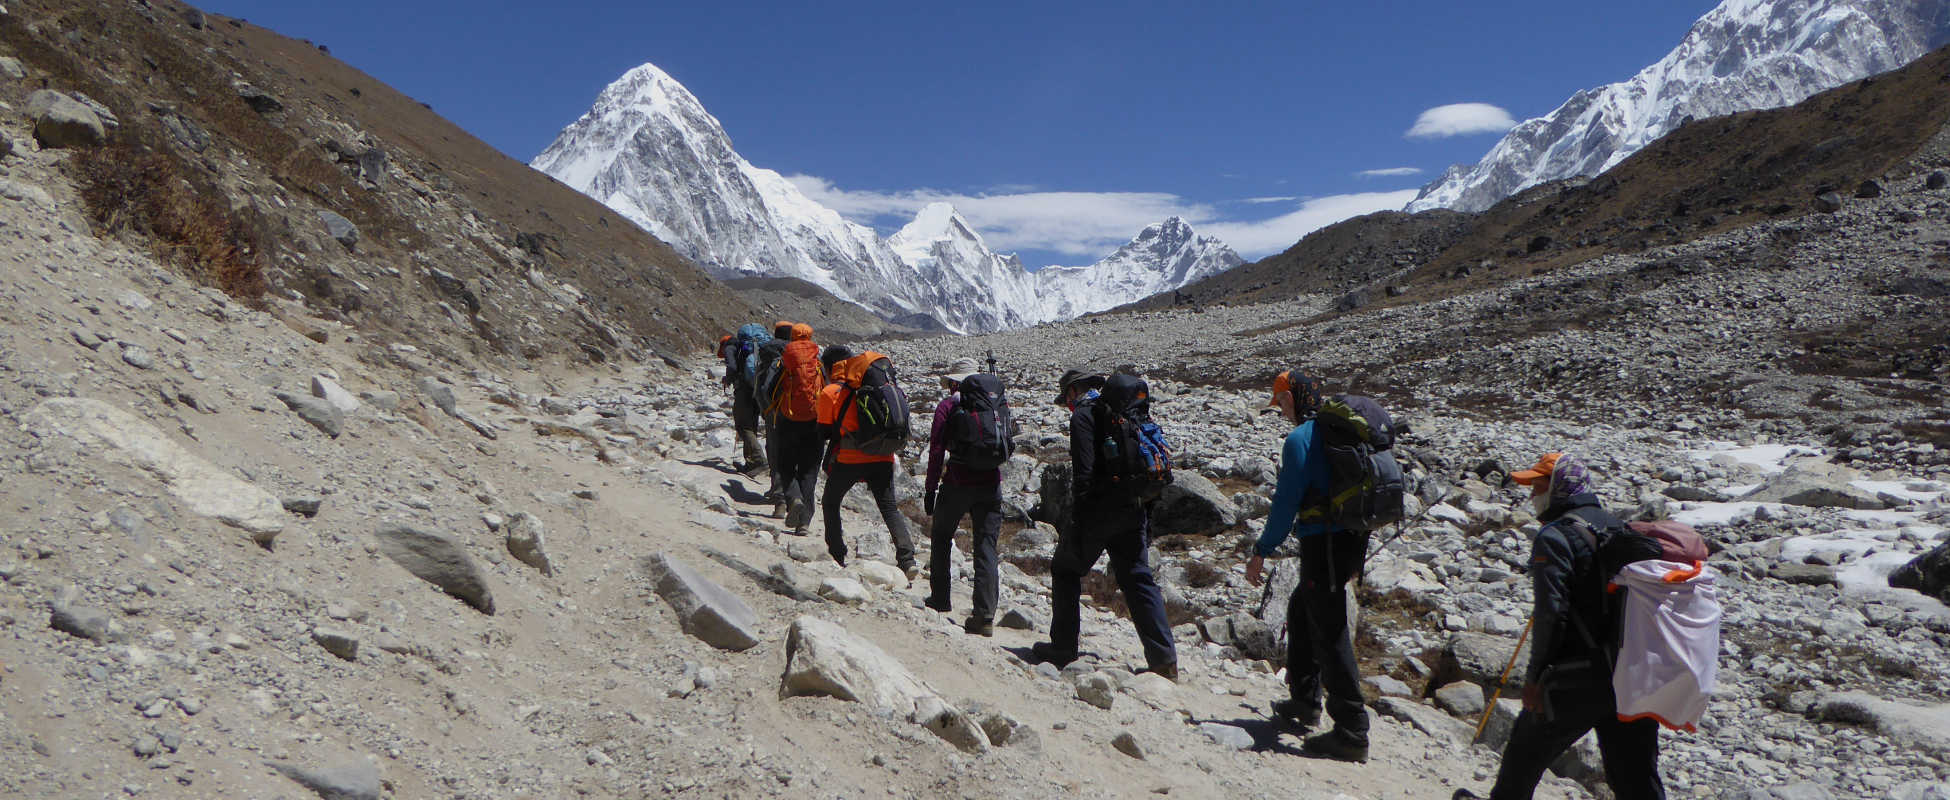 everest-base-camp-trek-header